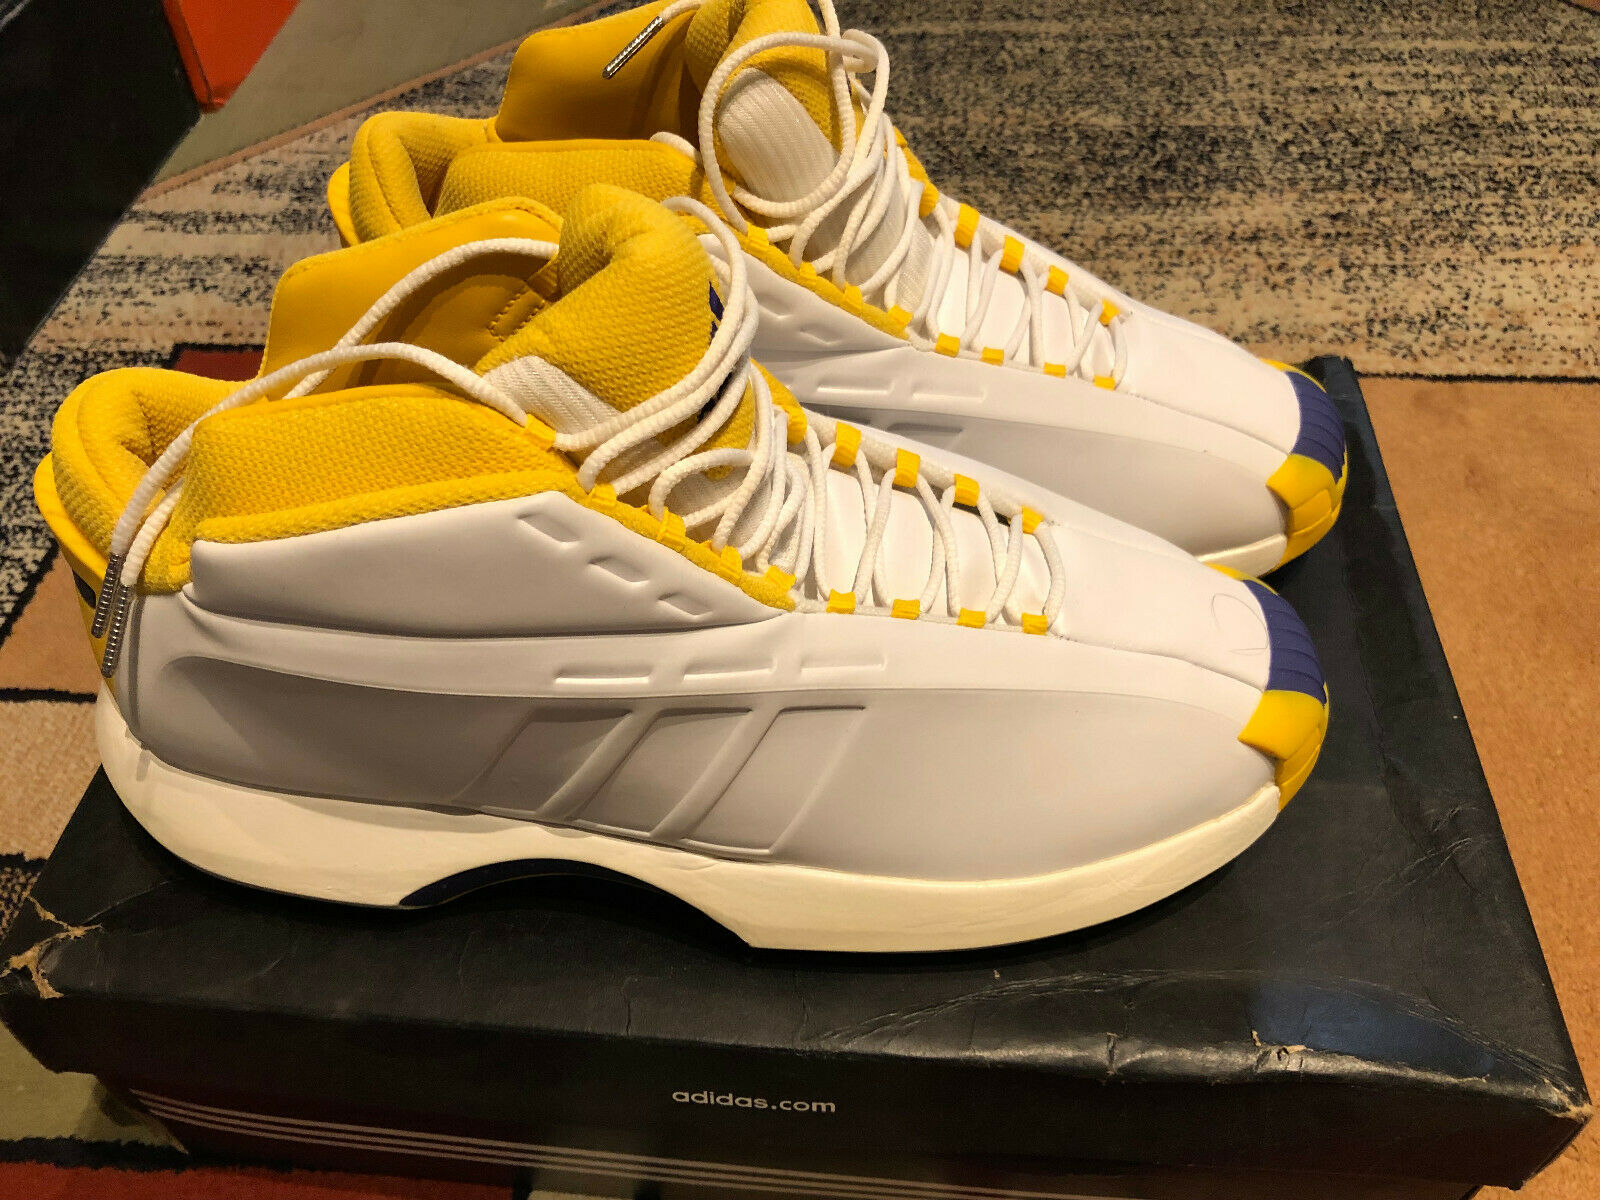 Adidas Crazy 1 467309 Lakers CW